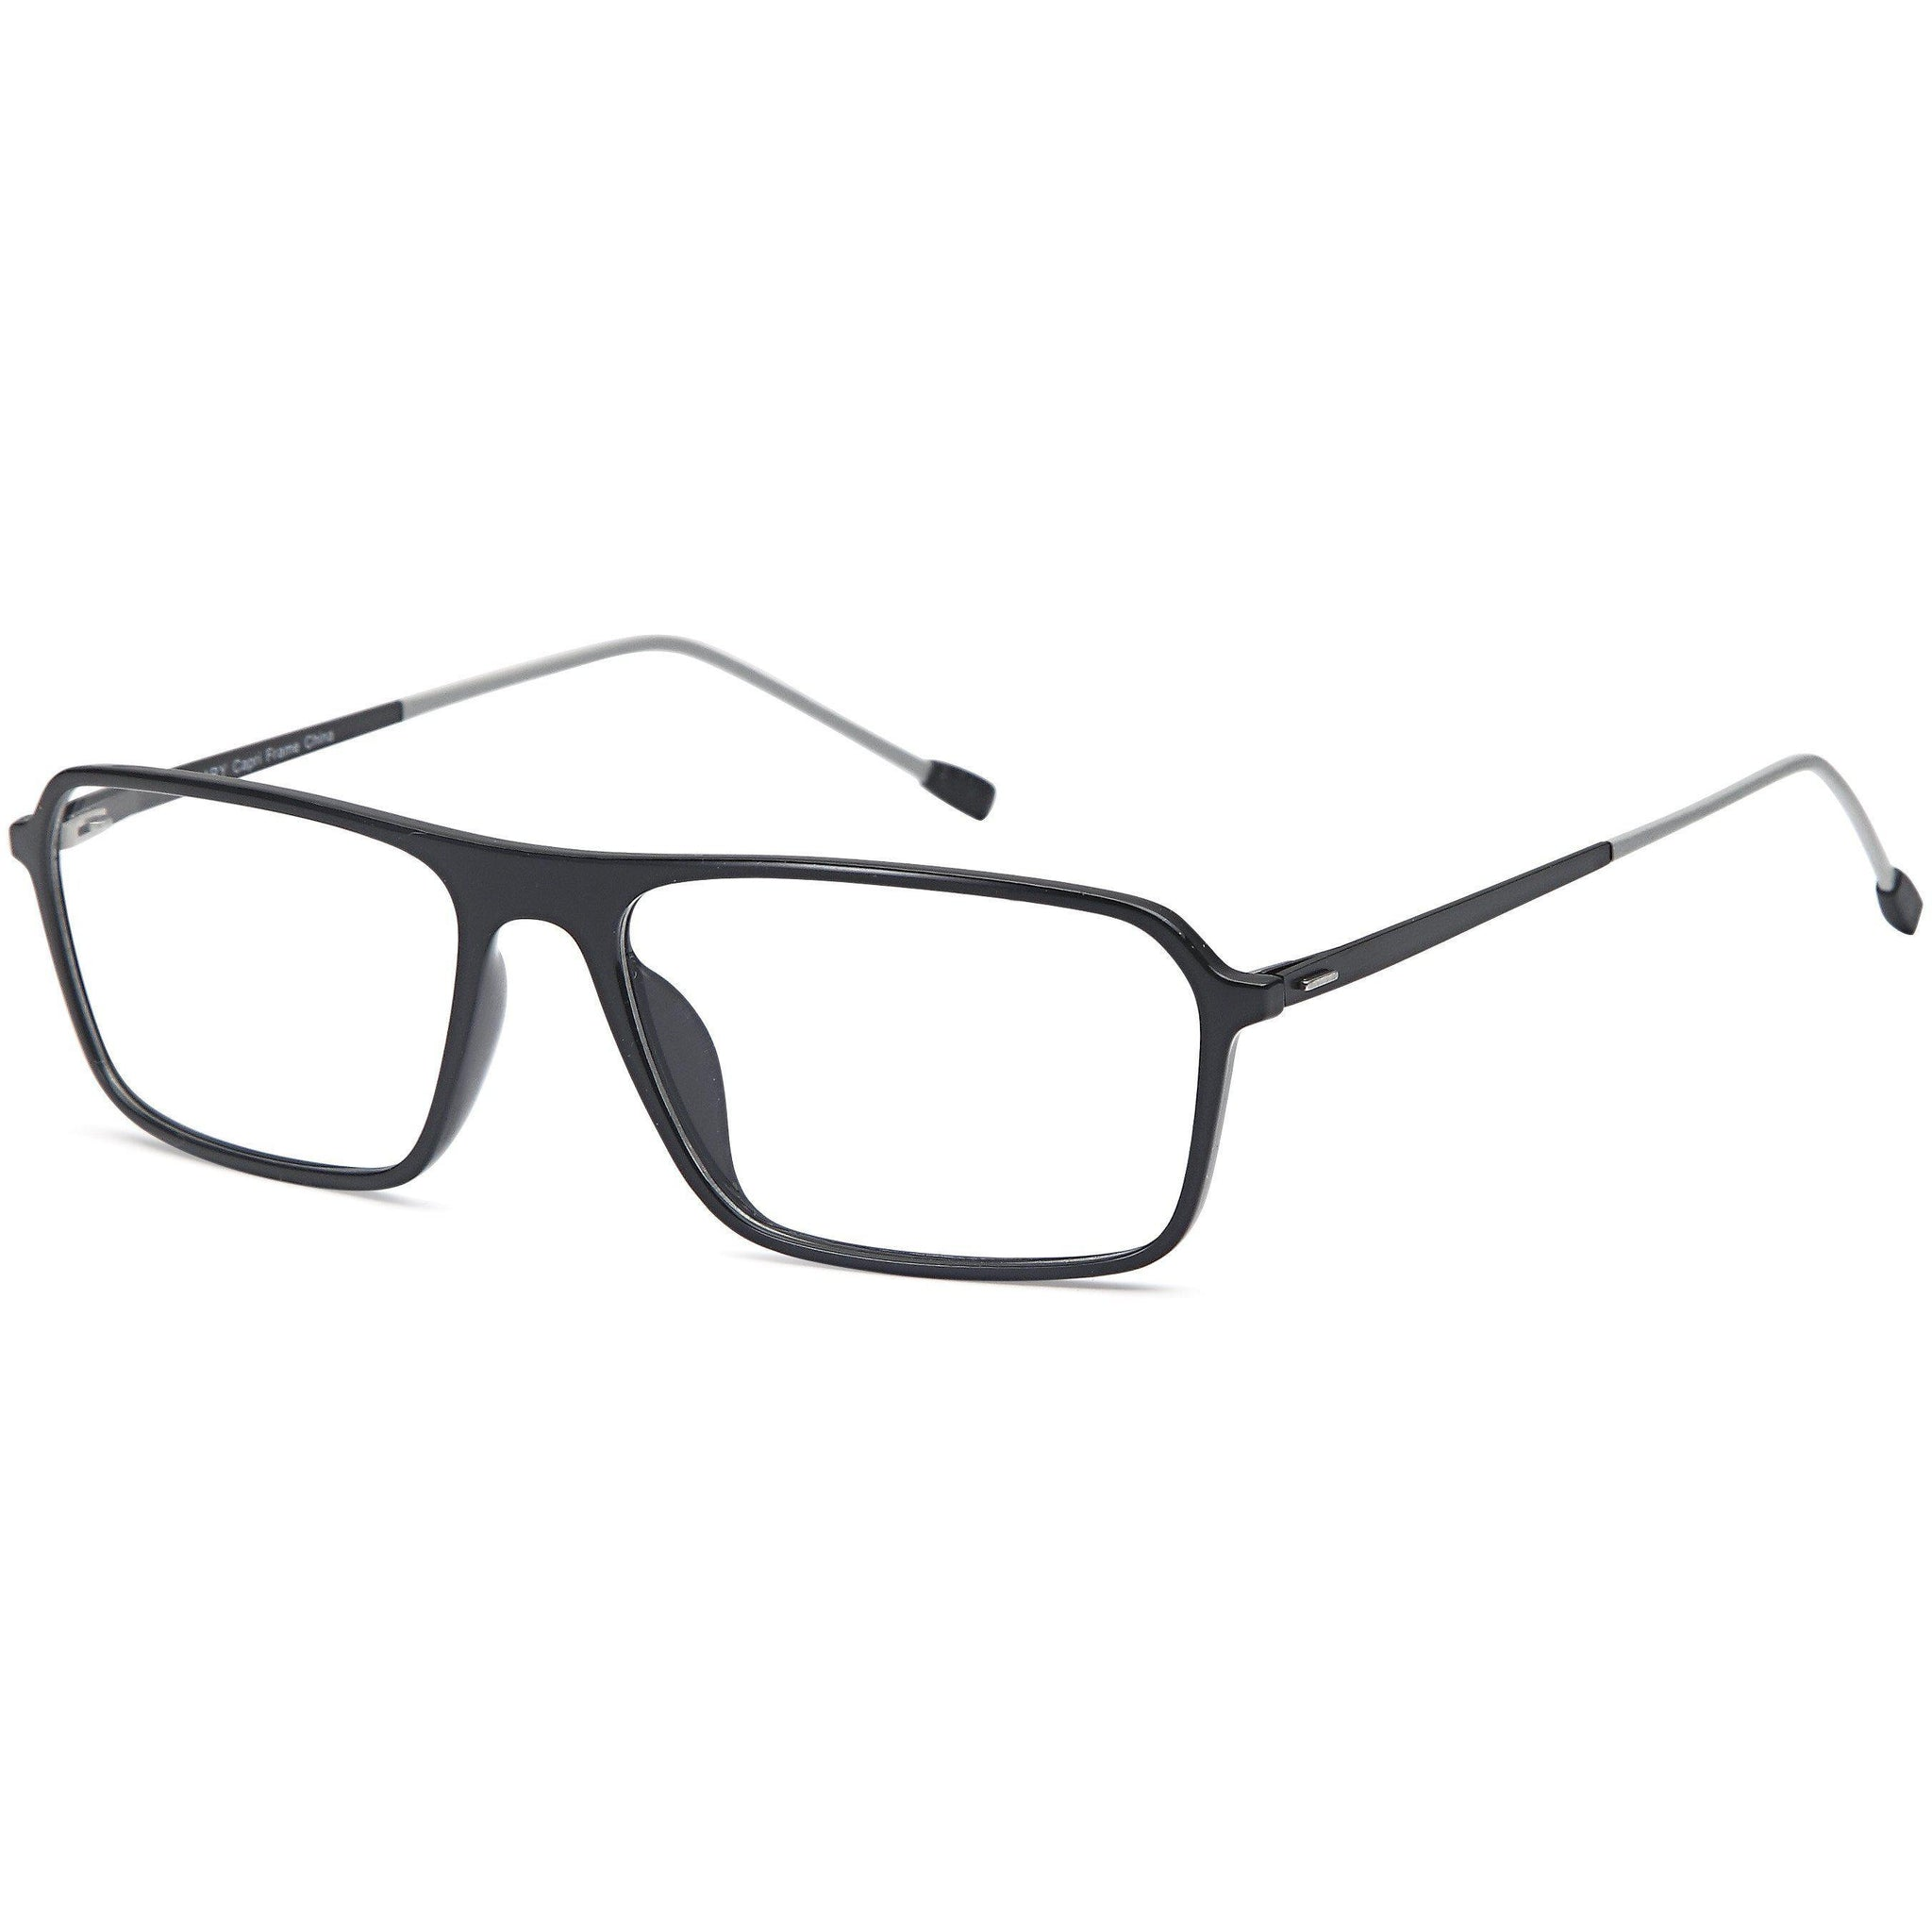 The Icons Prescription Glasses GARY Eyeglasses Frame